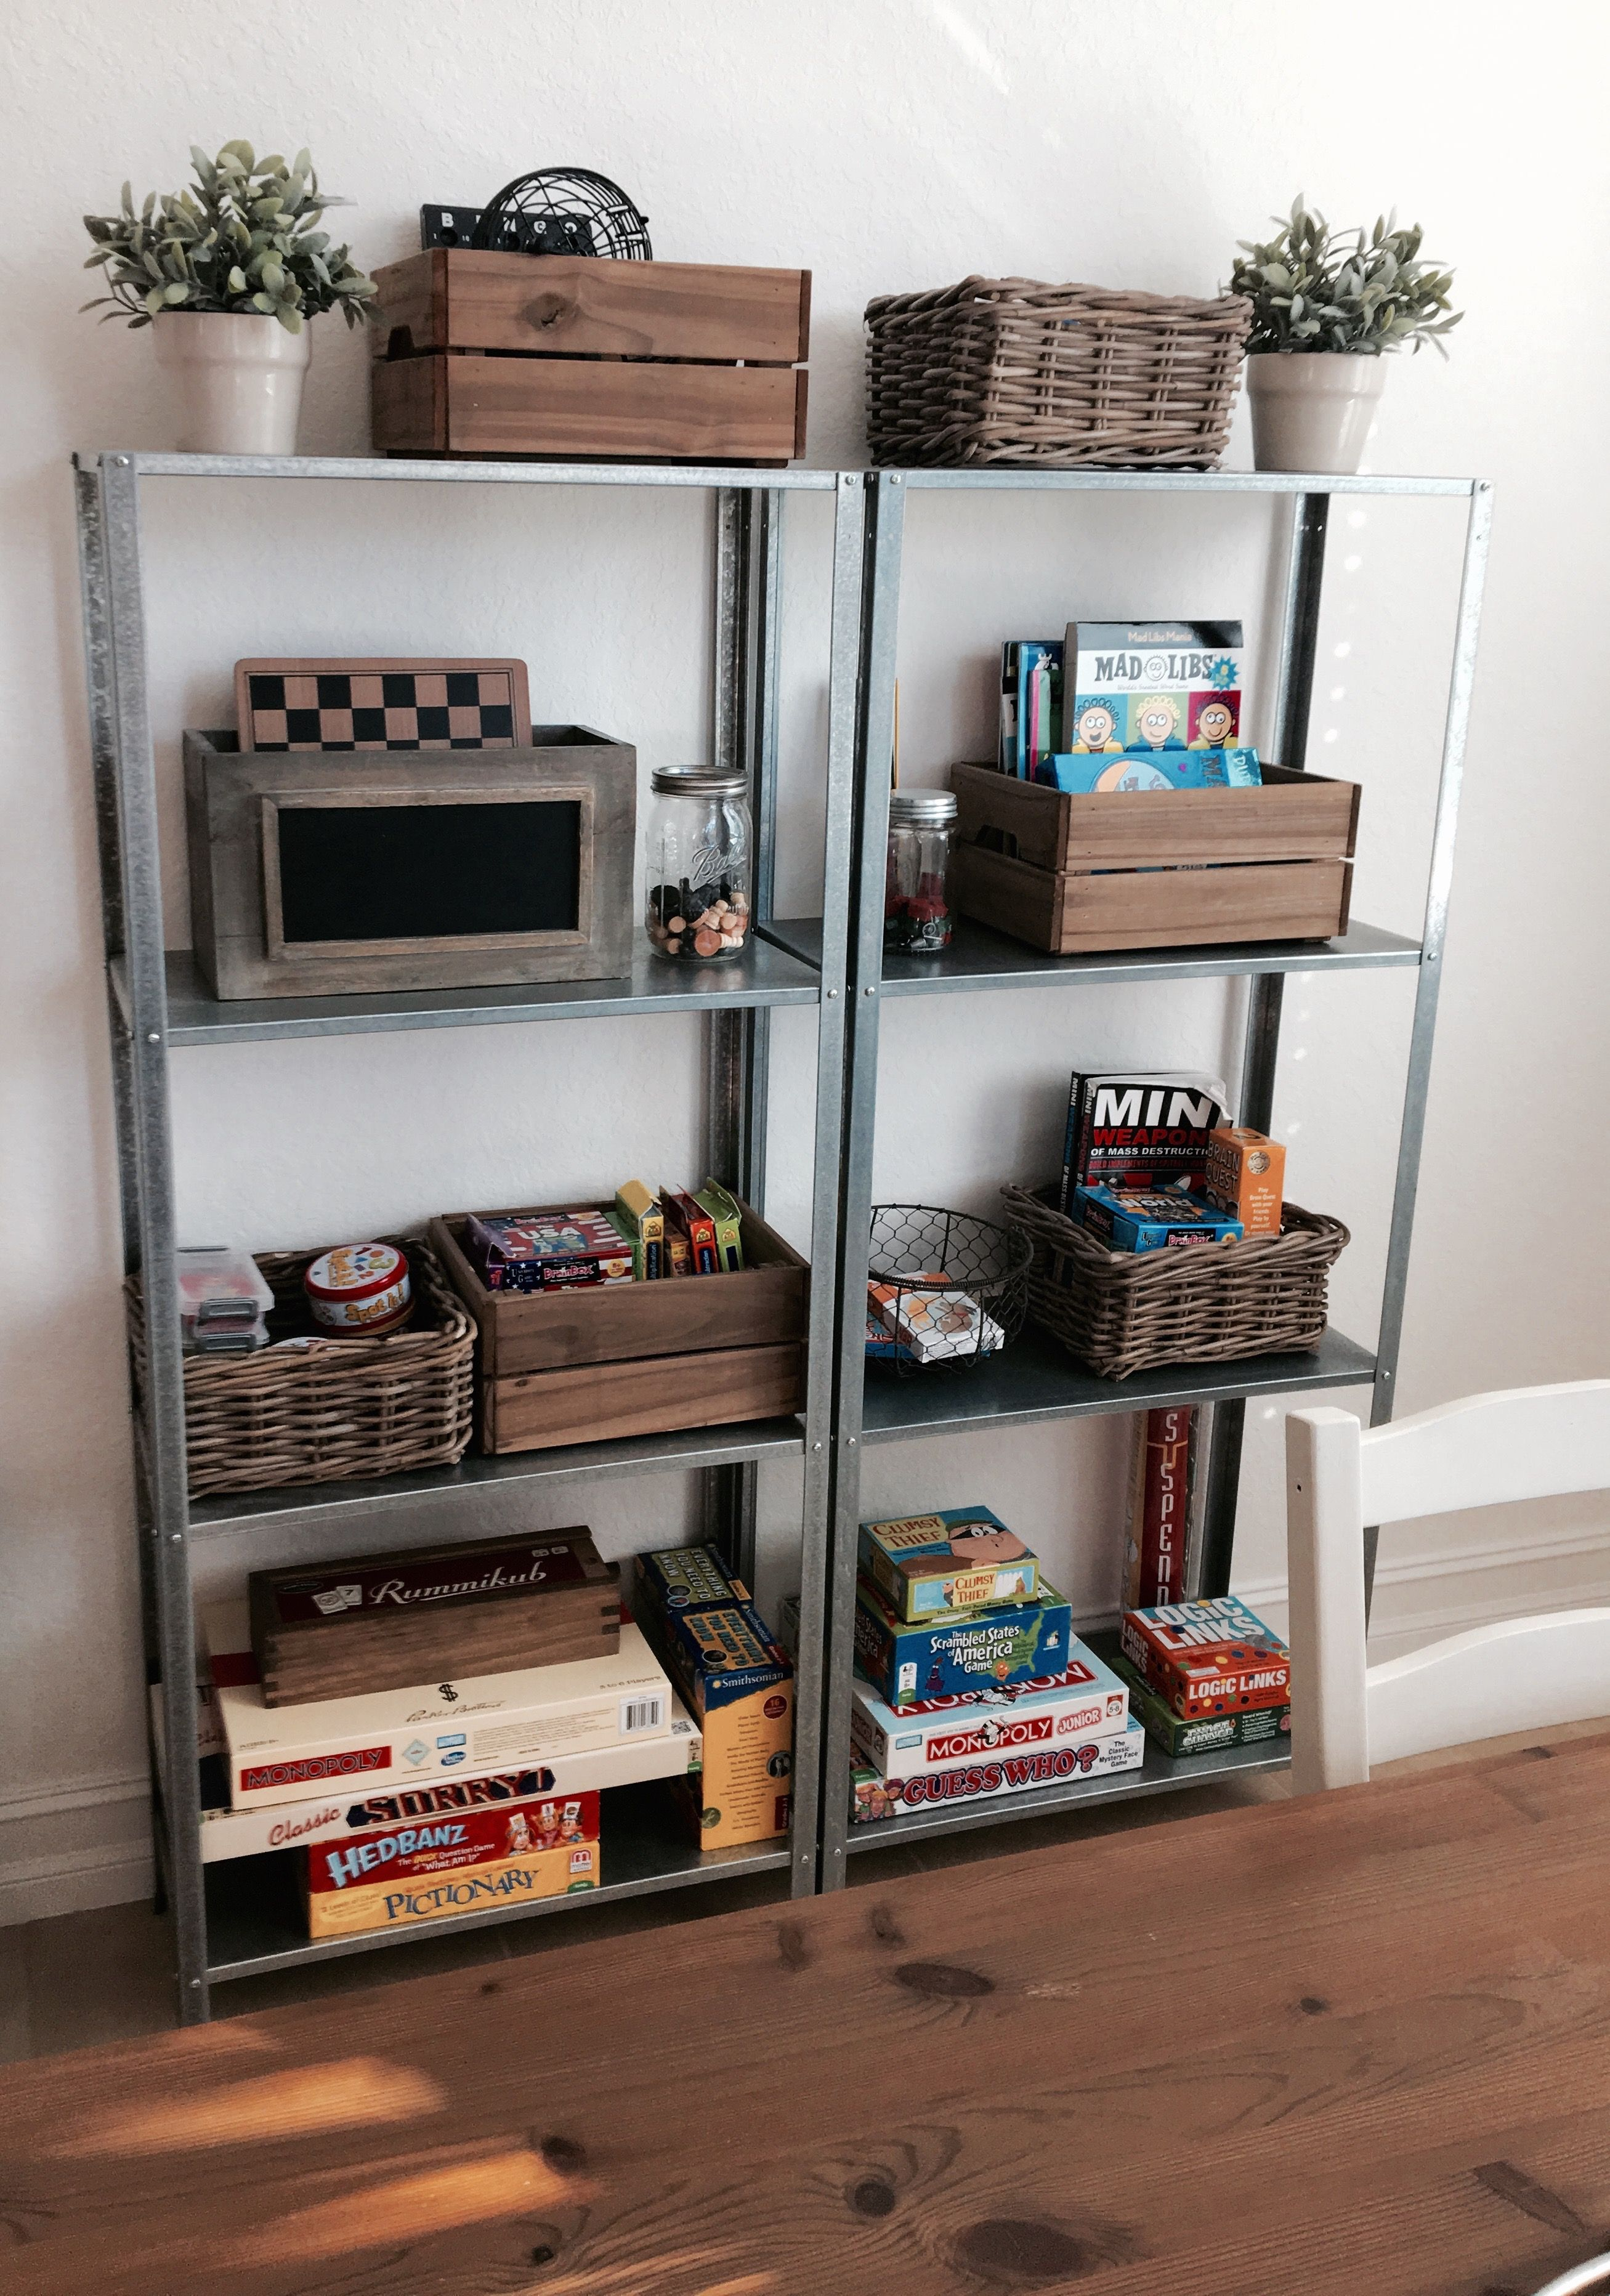 Ikea metal shelving with wood and basket decorations / board game shelving